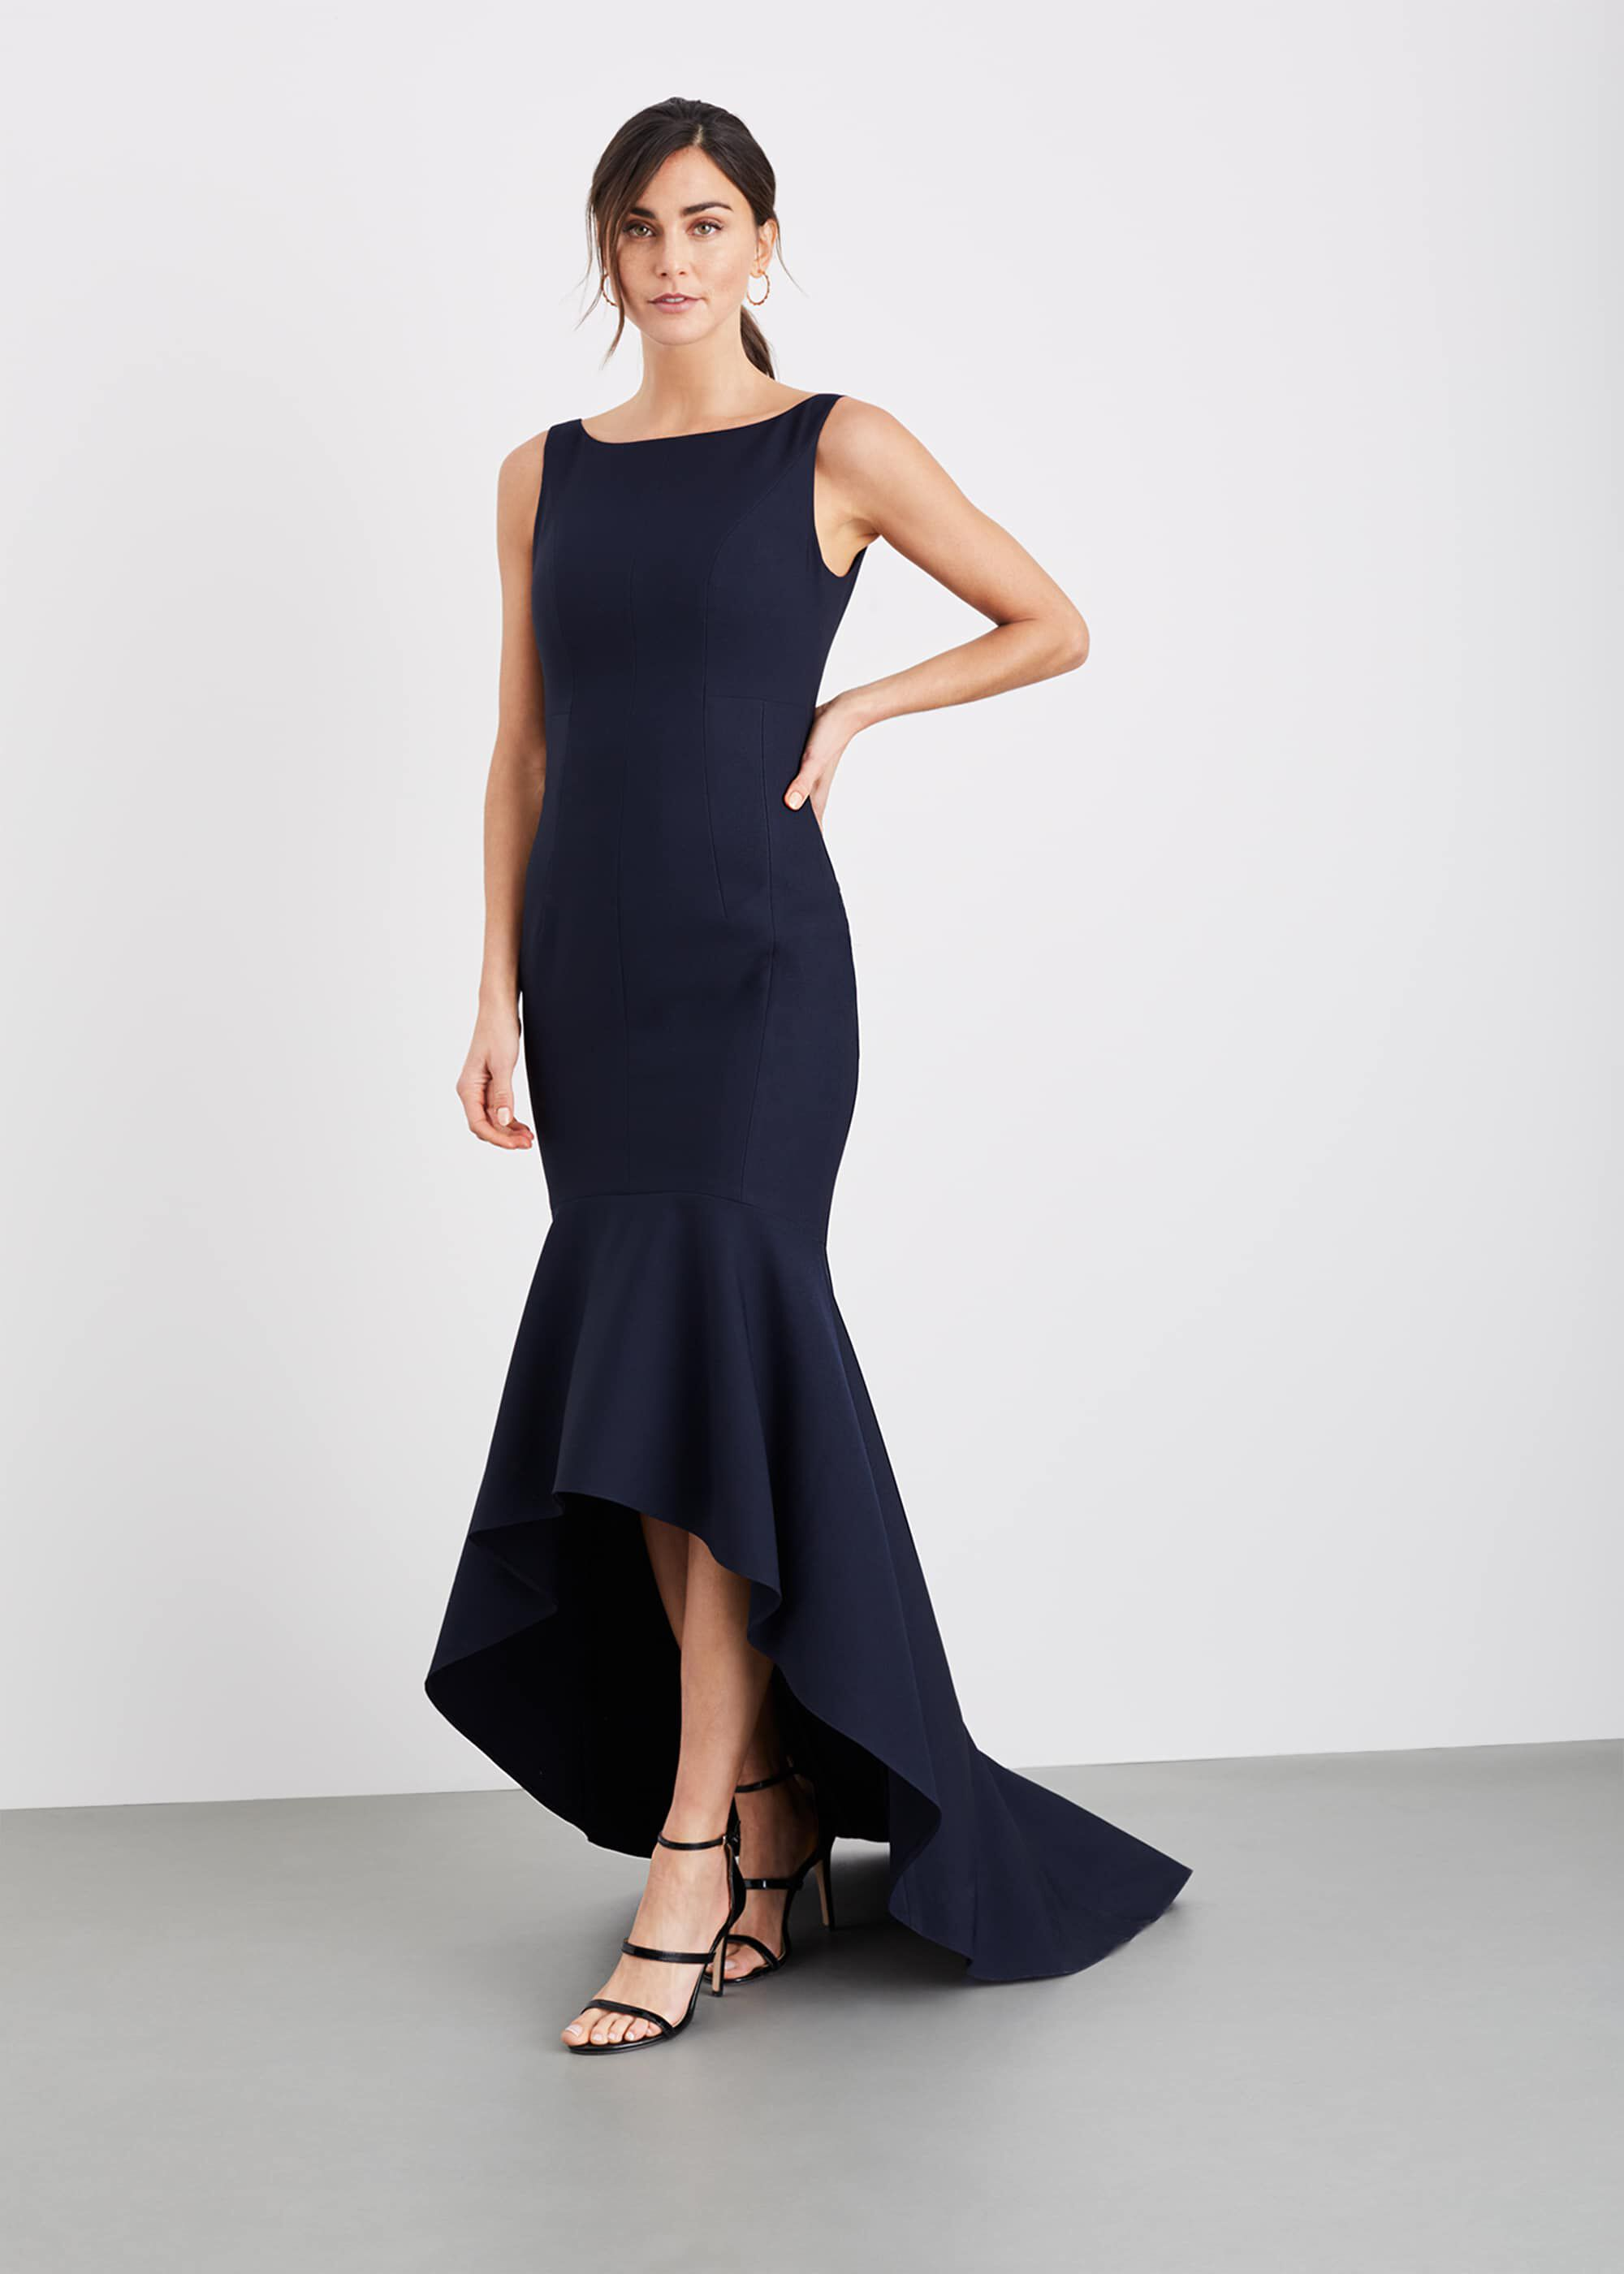 Damsel in a Dress Leela Maxi Dress, Blue, Occasion Dress